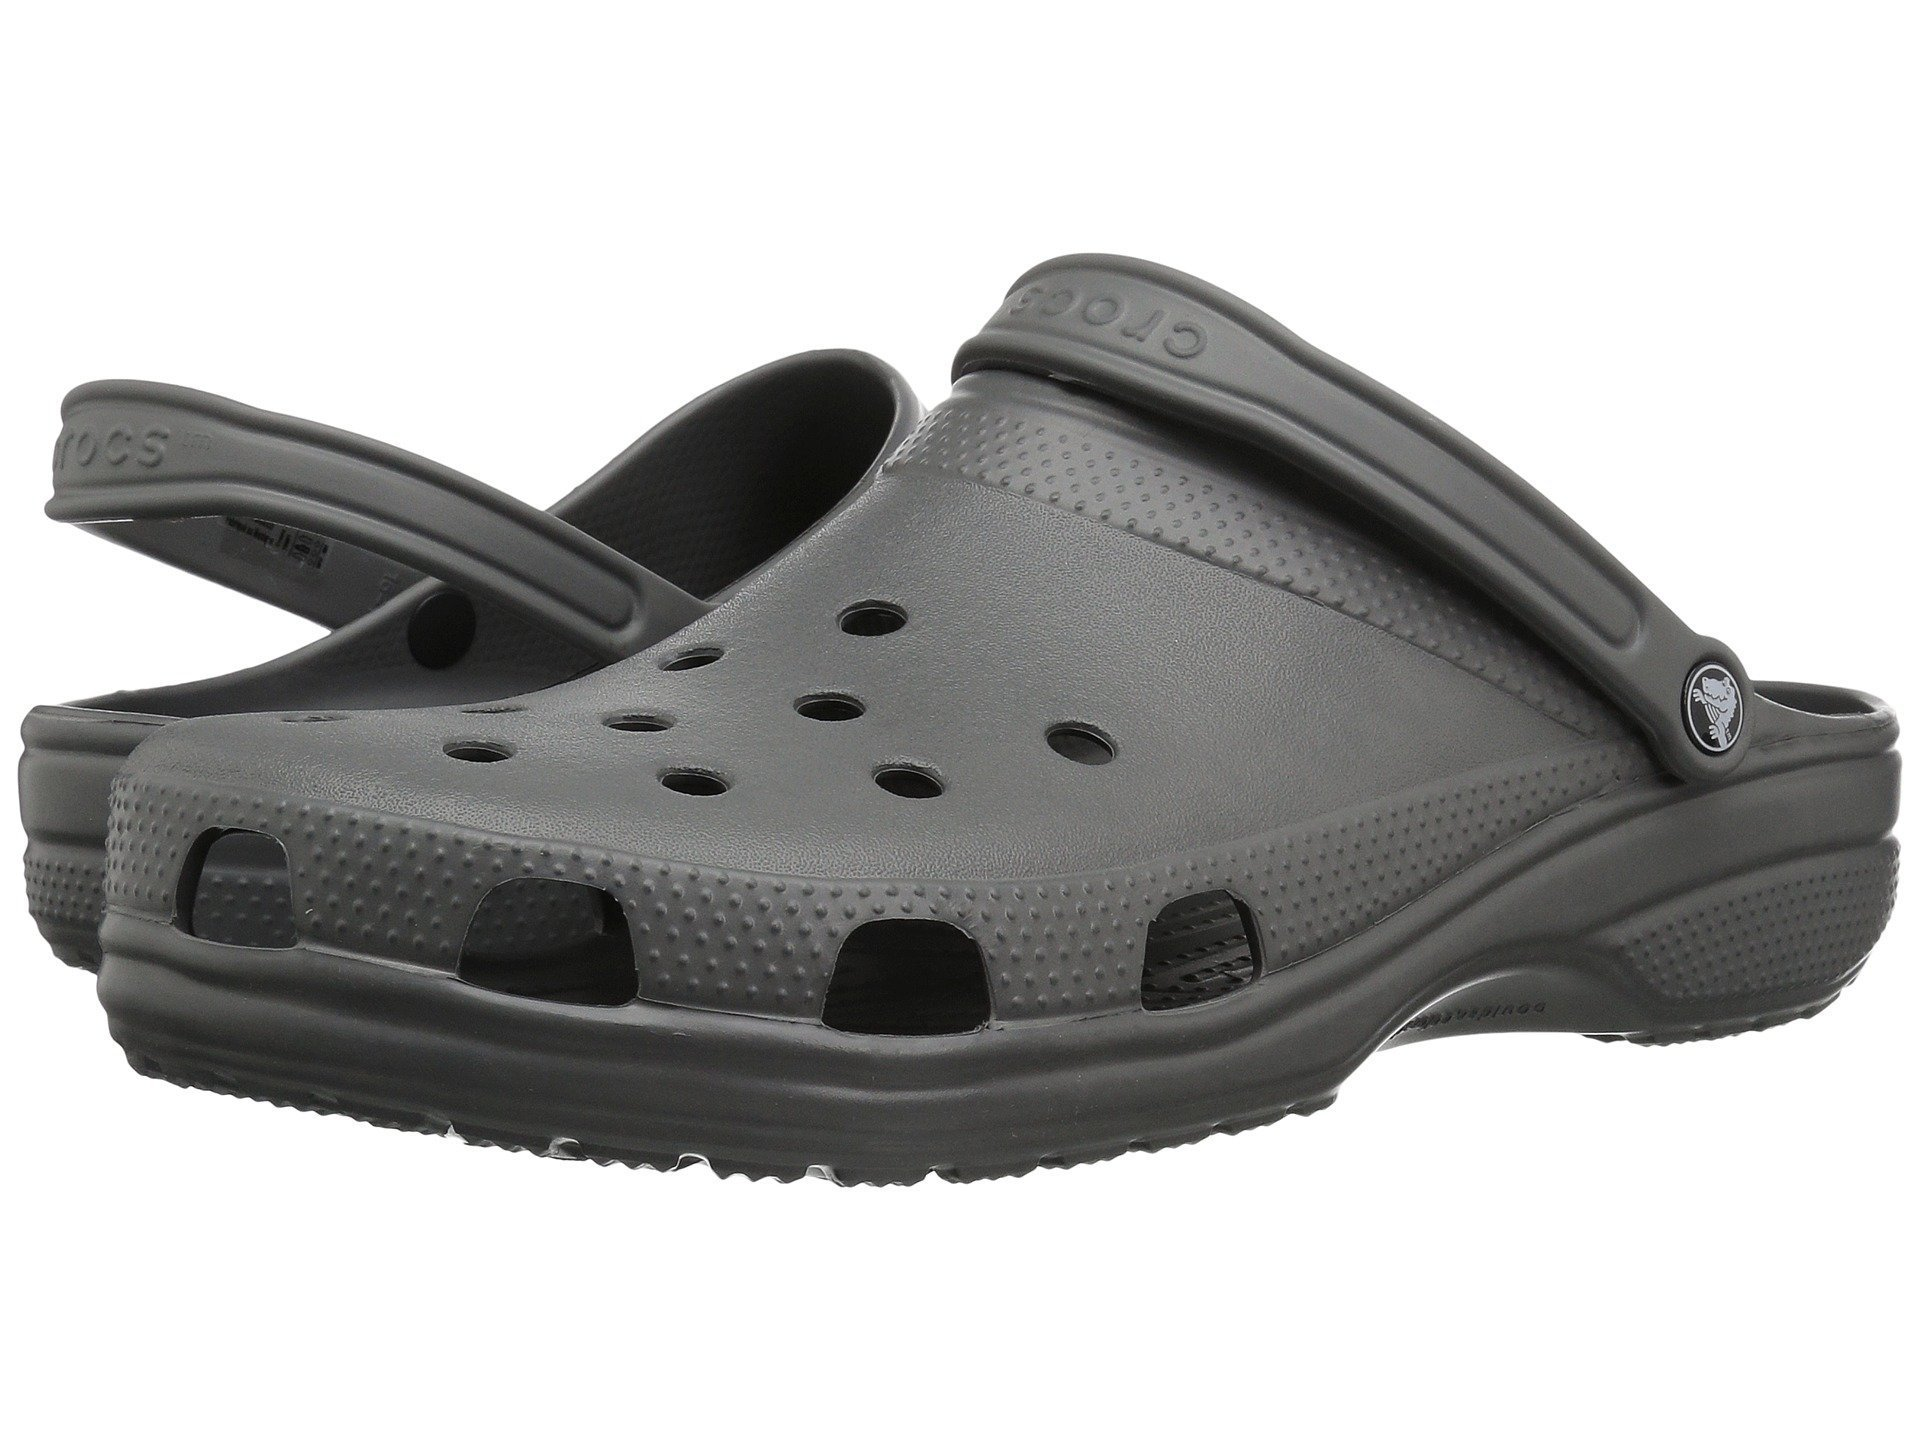 Crocs Classic Mule Slate Grey - 5 US Men/ 7 US Women M US